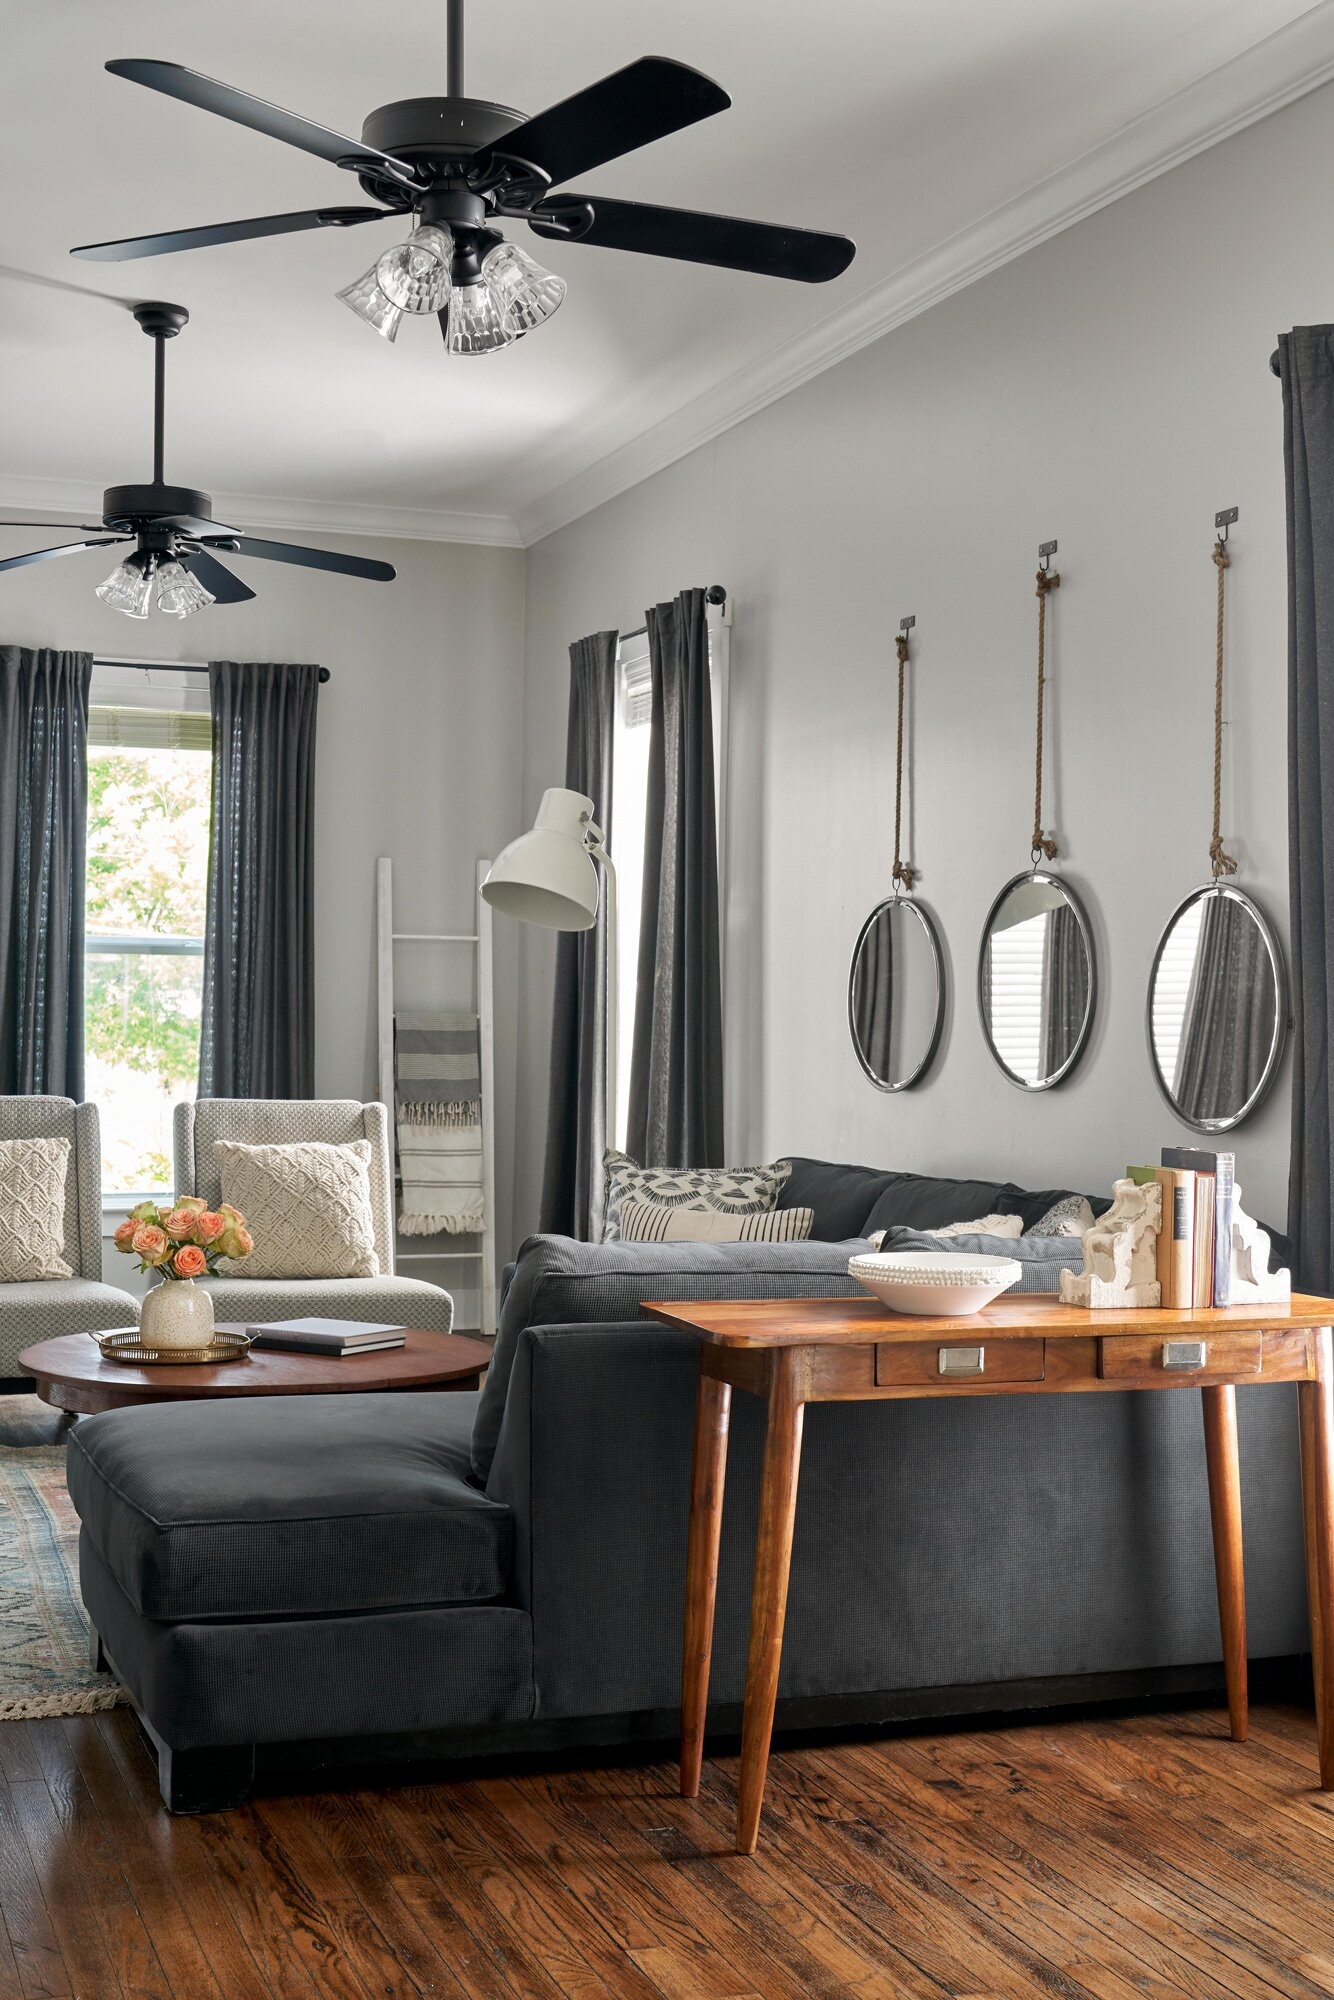 11 Gorgeous Gray Living Room Ideas for a Stylish Neutral Space